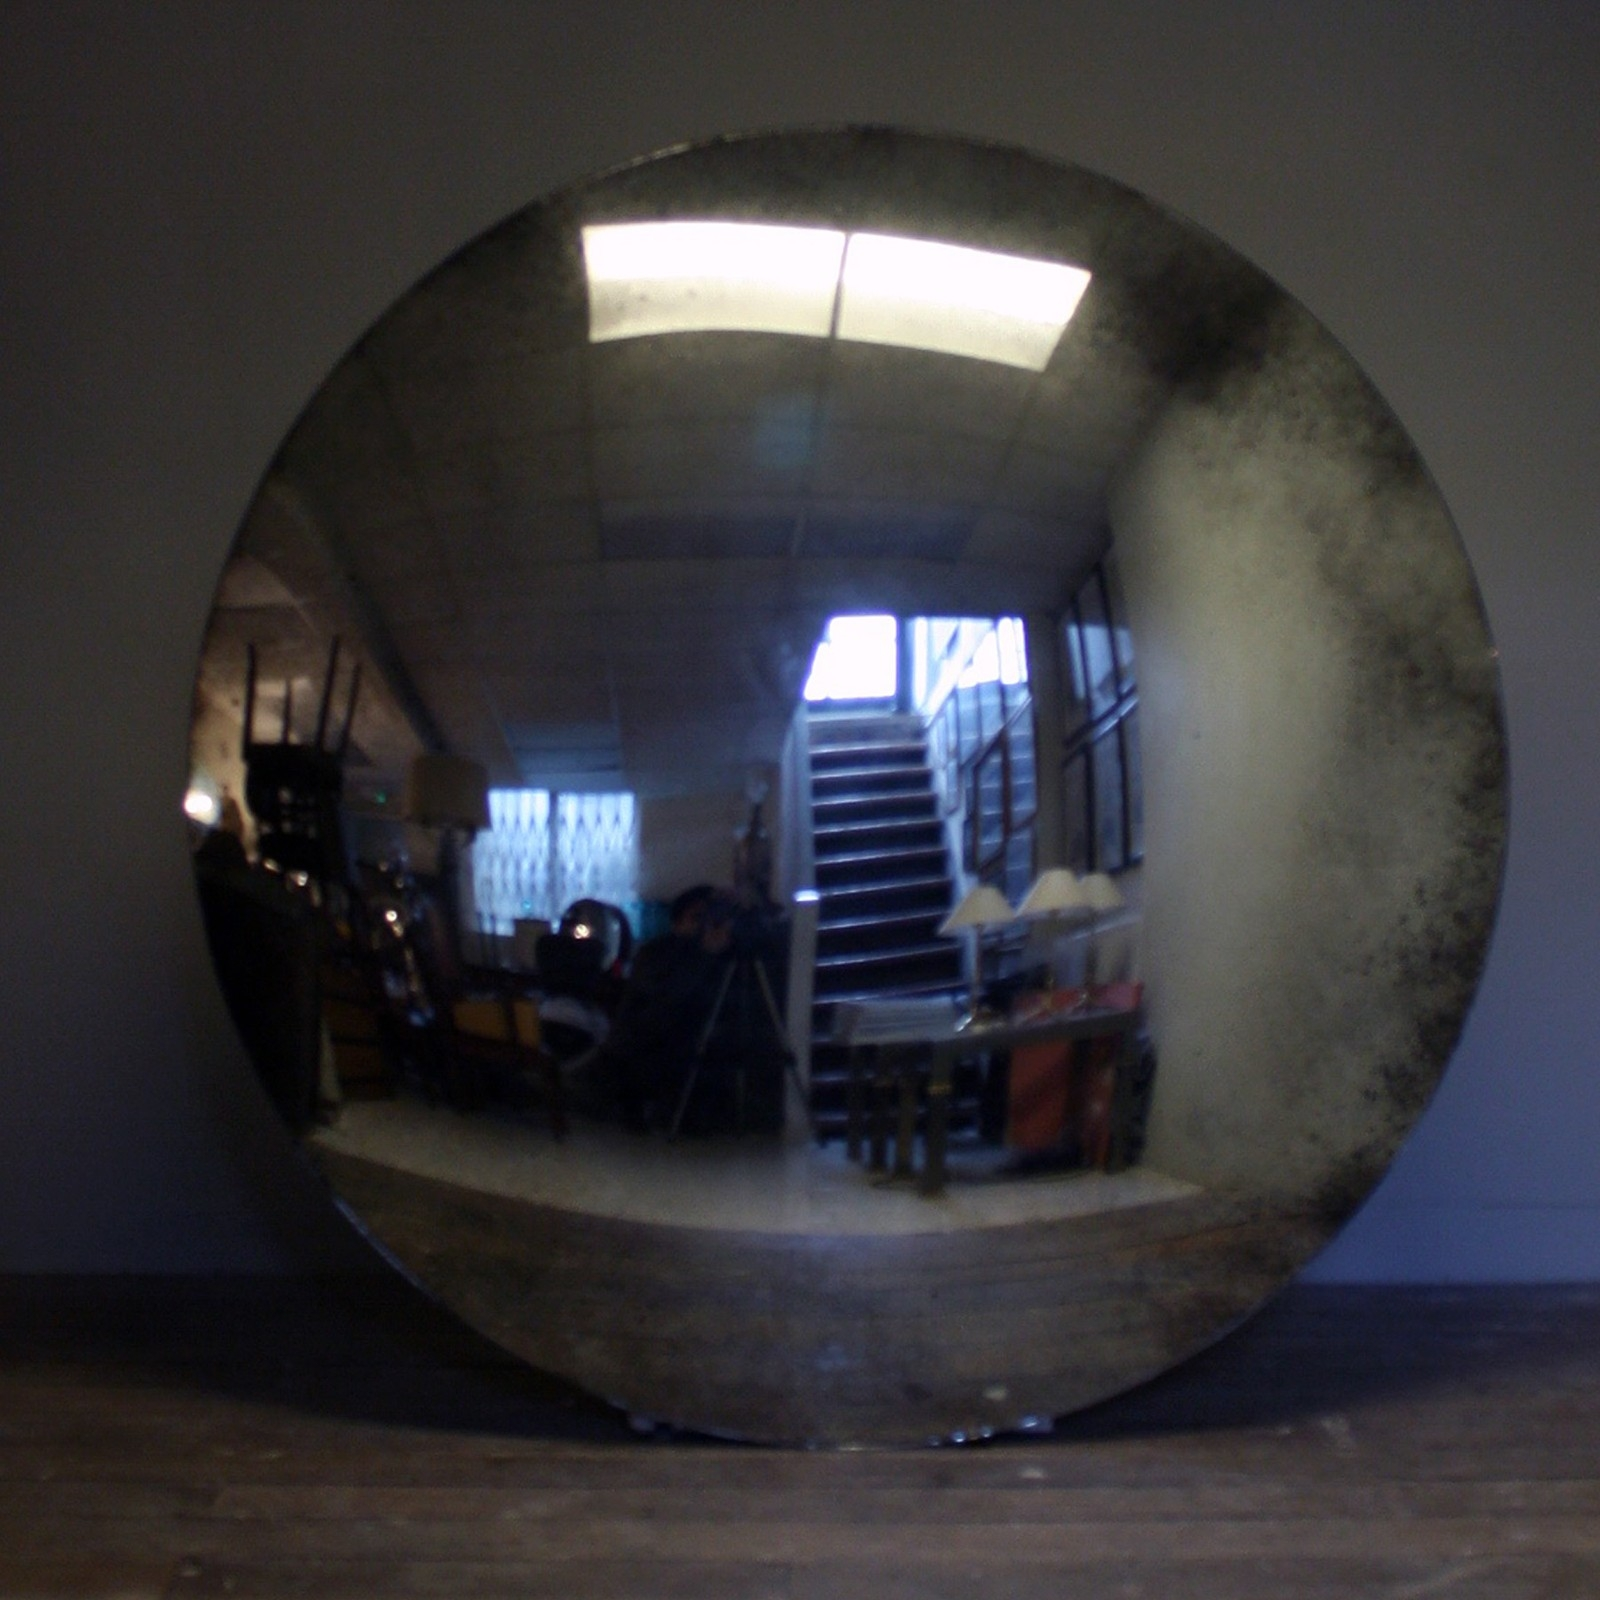 Massive Convex Mirror Decorative Collective Inside Antique Convex Mirrors For Sale (Image 12 of 15)